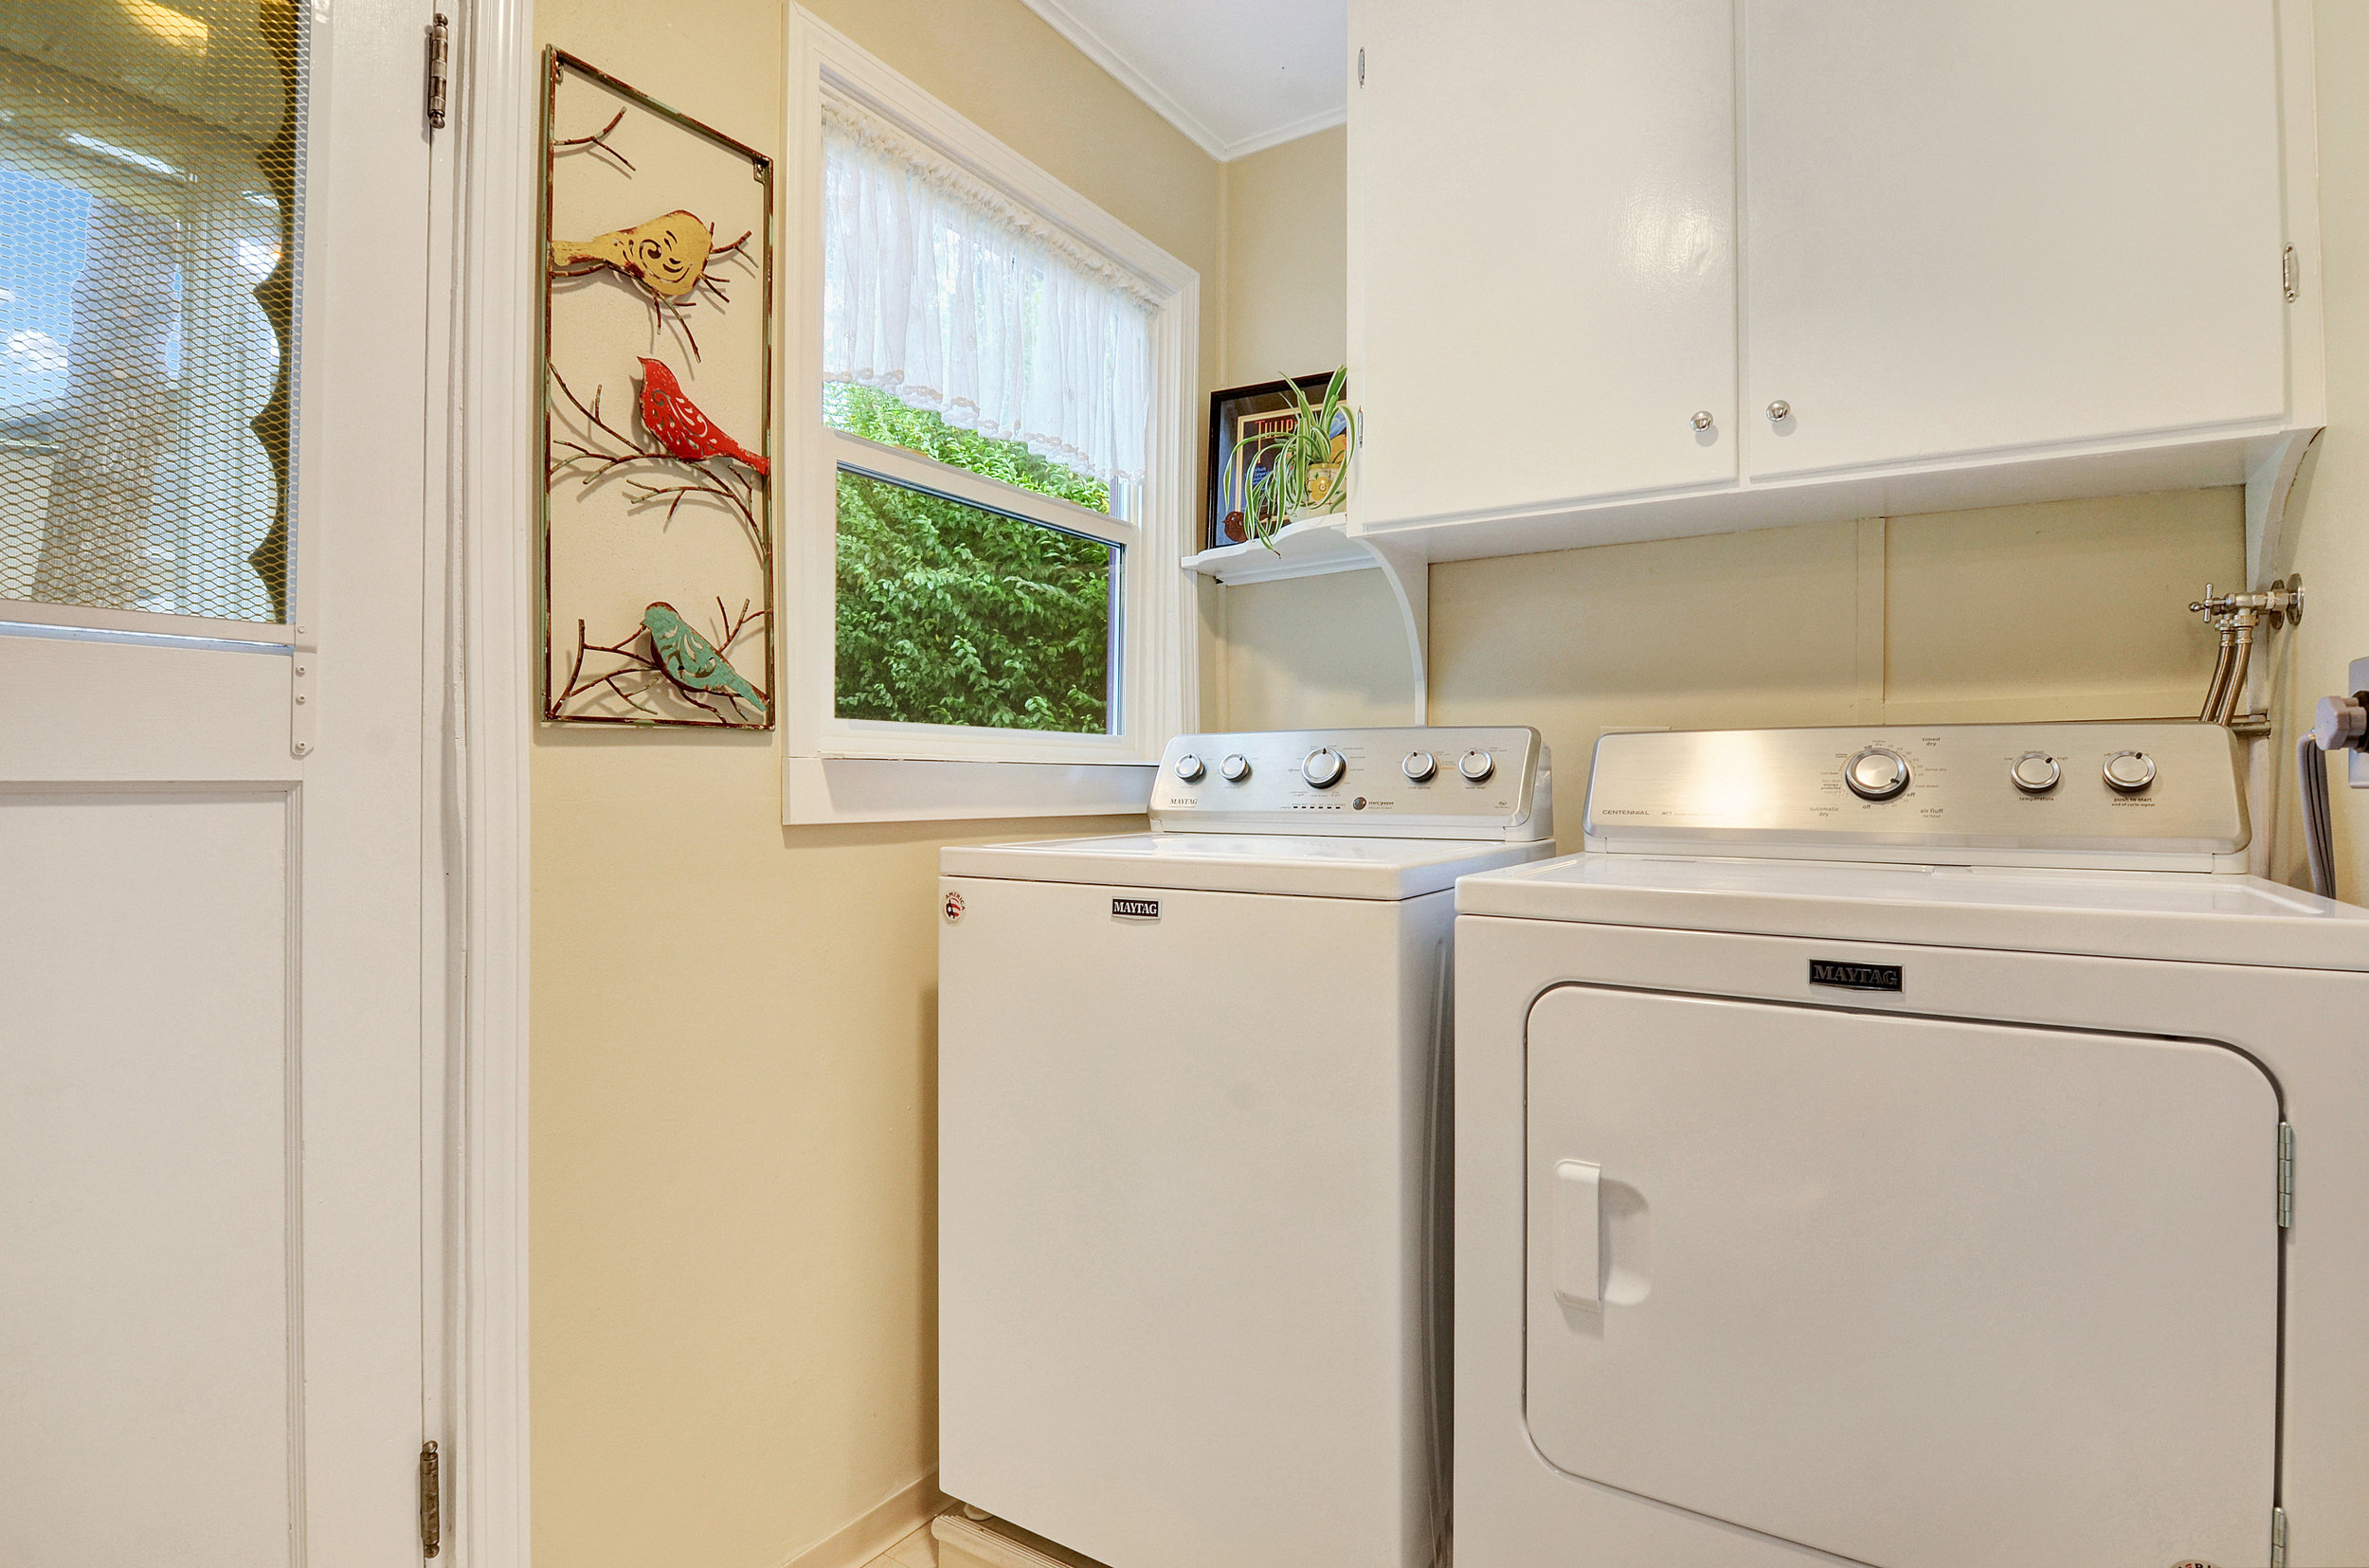 The laundry room is just a step down from the kitchen and dining area. Here you'll find a new floor, new washer and dryer, a door to the back yard, and a door on the right into the garage.